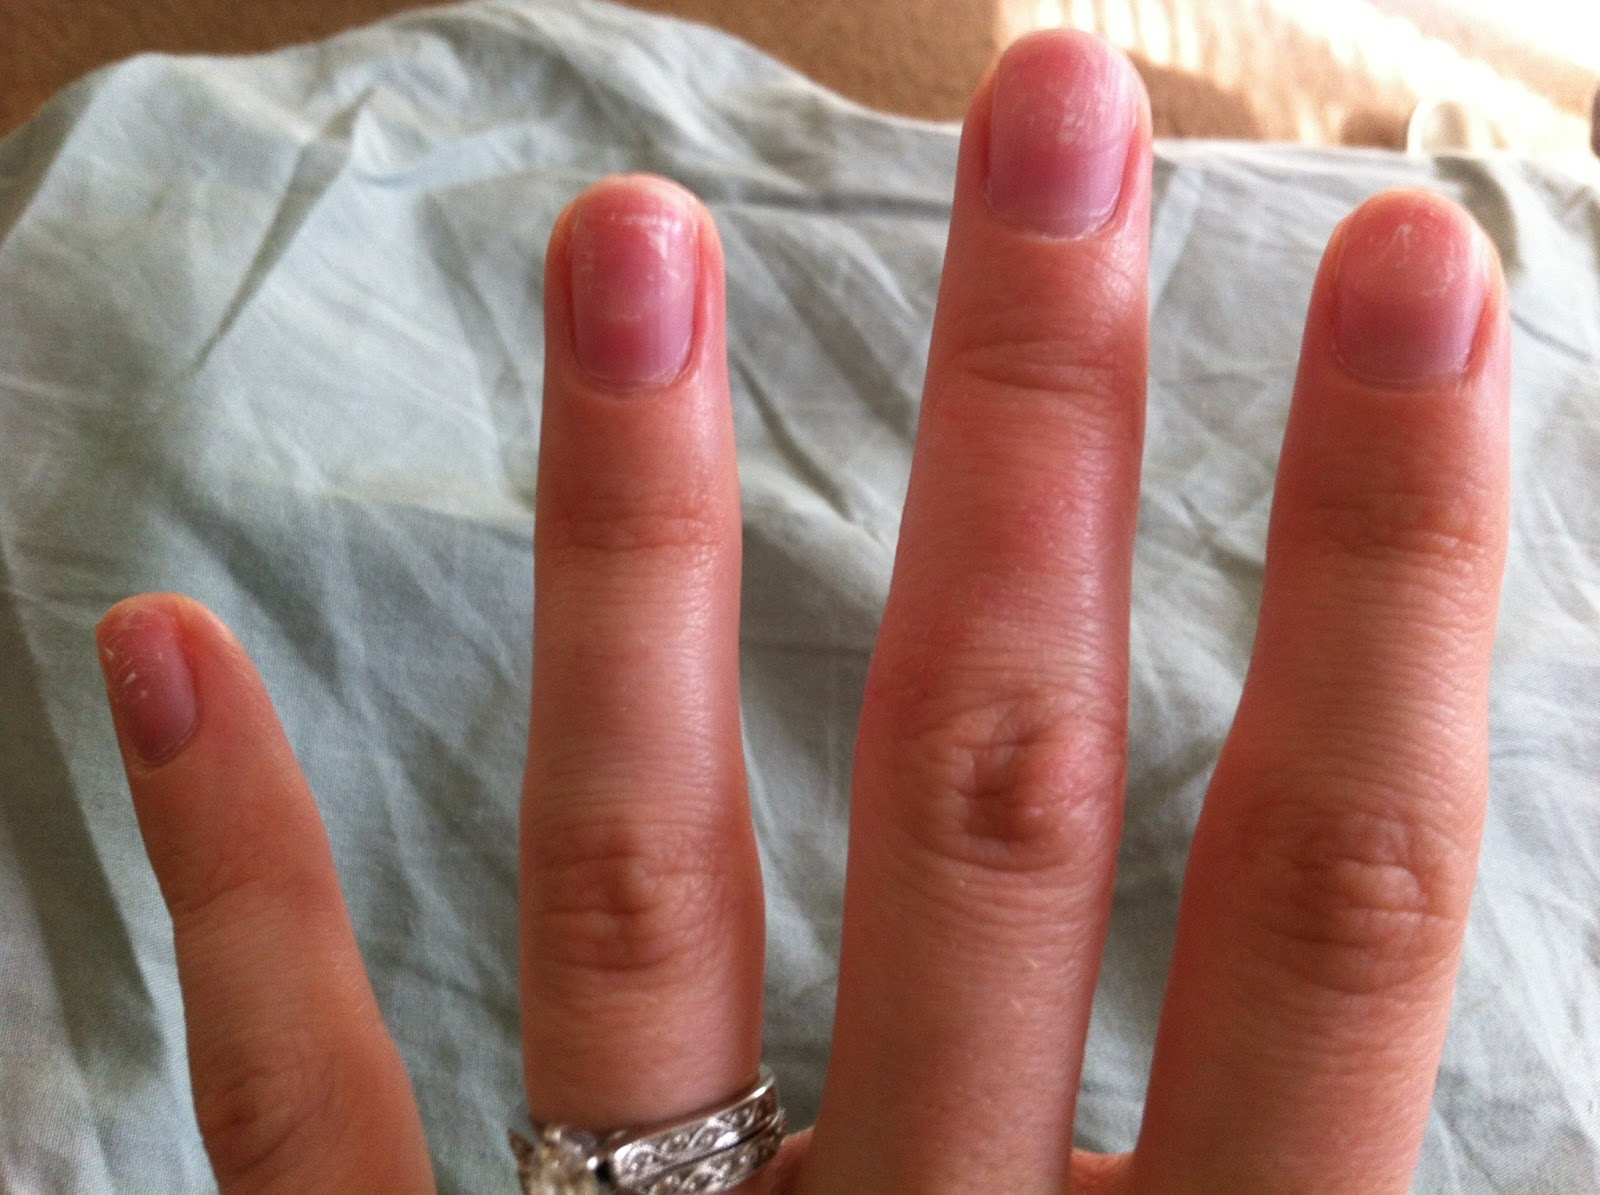 Queen of poepp how to remove acrylic or gel nails from home for Acrylic nail prices at a salon